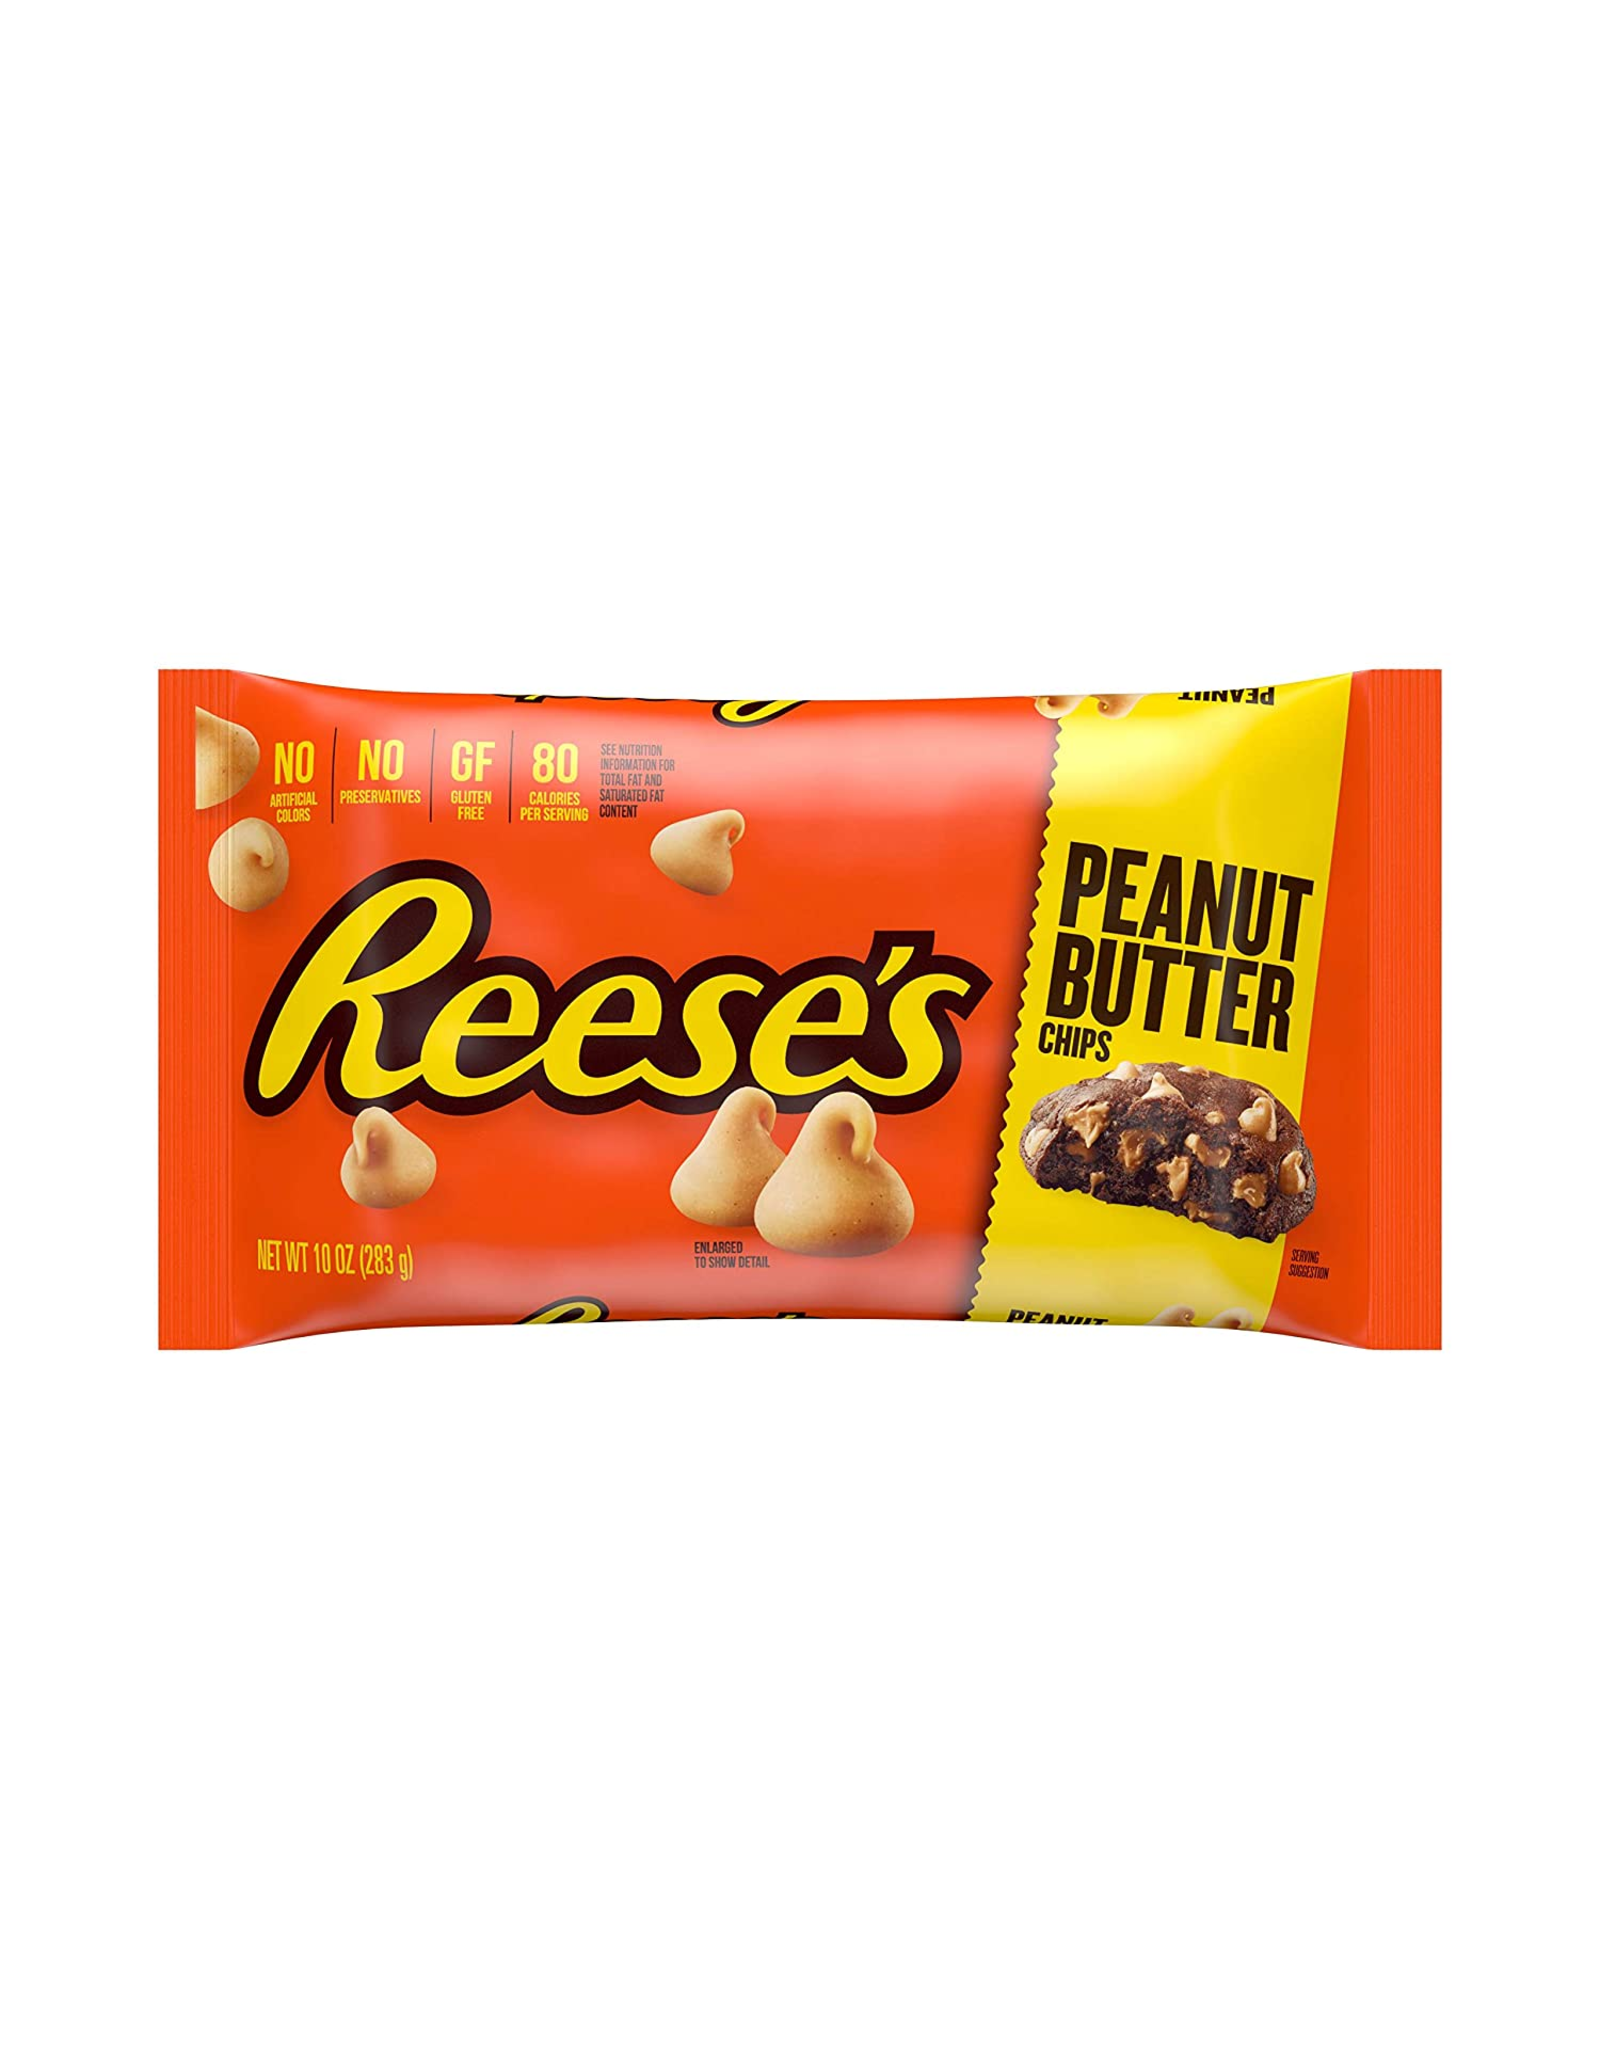 Reese's Peanut Butter Chips - 283g